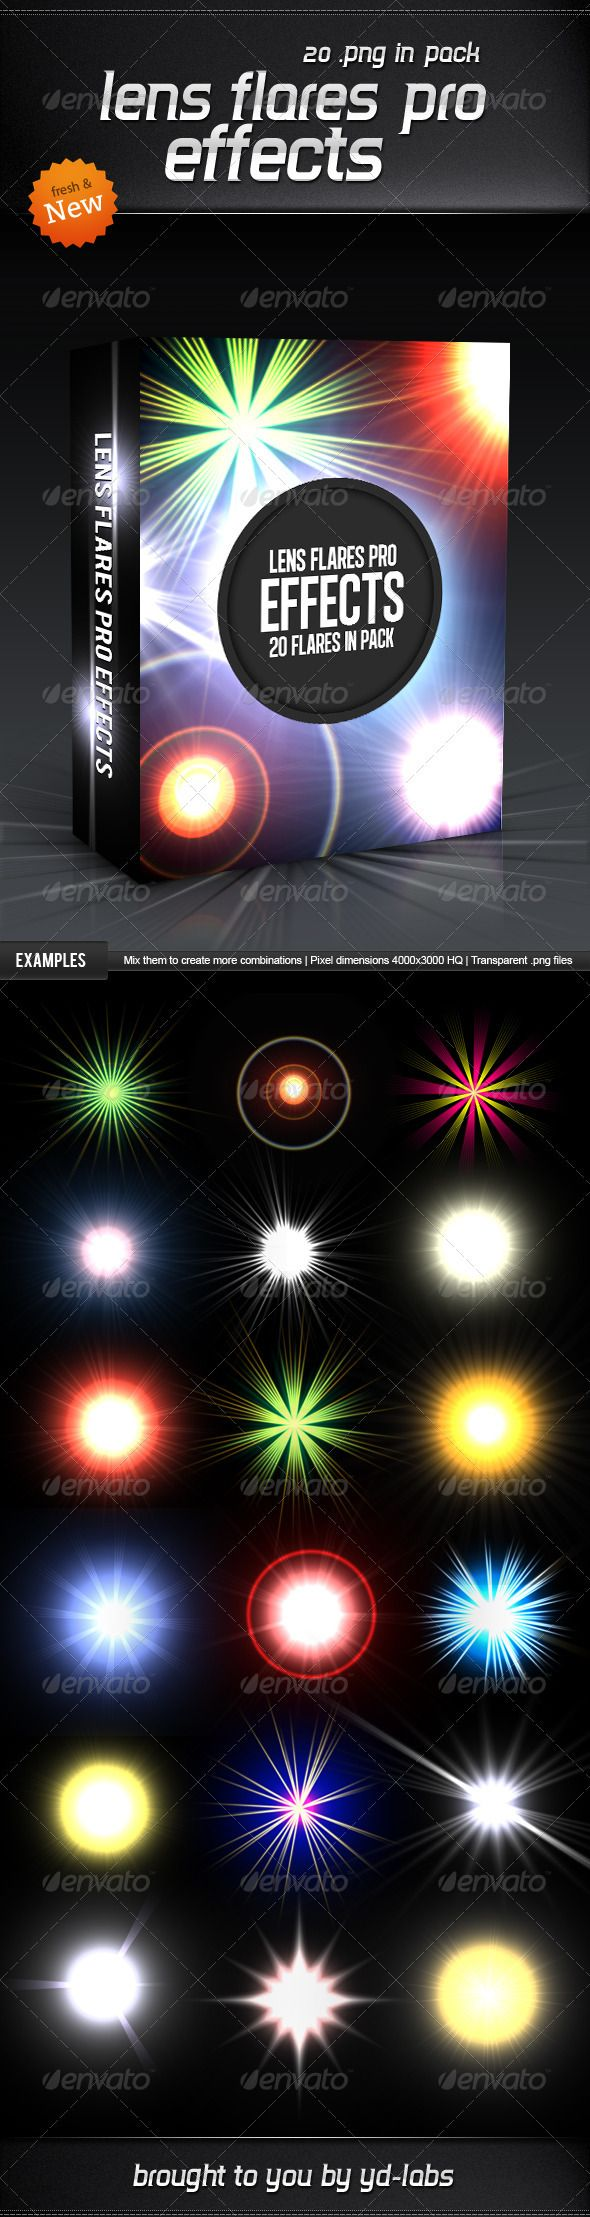 Lens Flares Pro Effects - #Decorative #Graphics Download here: https://graphicriver.net/item/lens-flares-pro-effects/3628831?ref=alena994